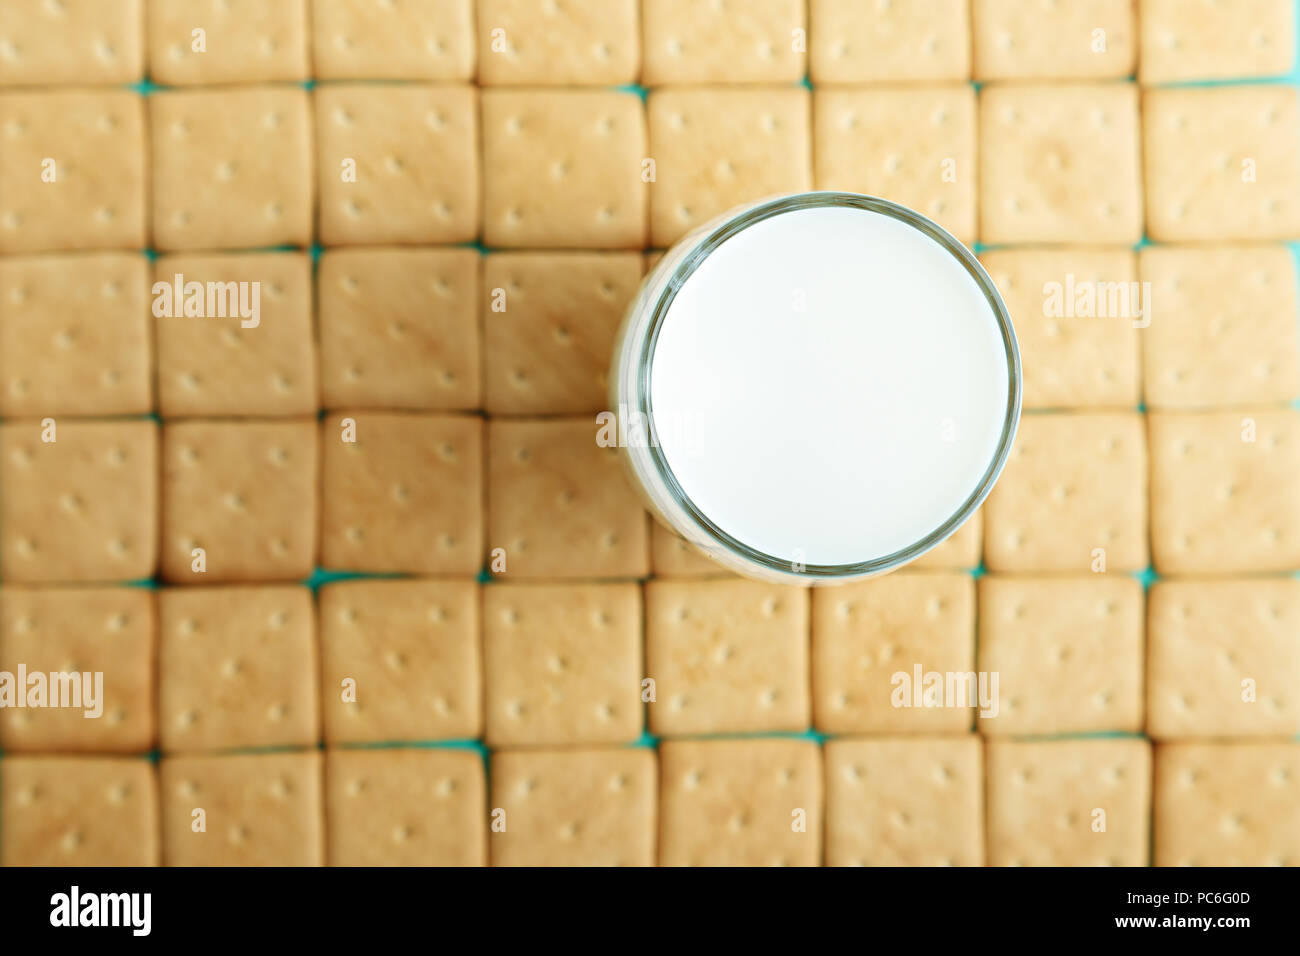 lots of crackers, appetizing background. square crackers are laid out in rows,  on the crackers there is a glass with milk - Stock Image